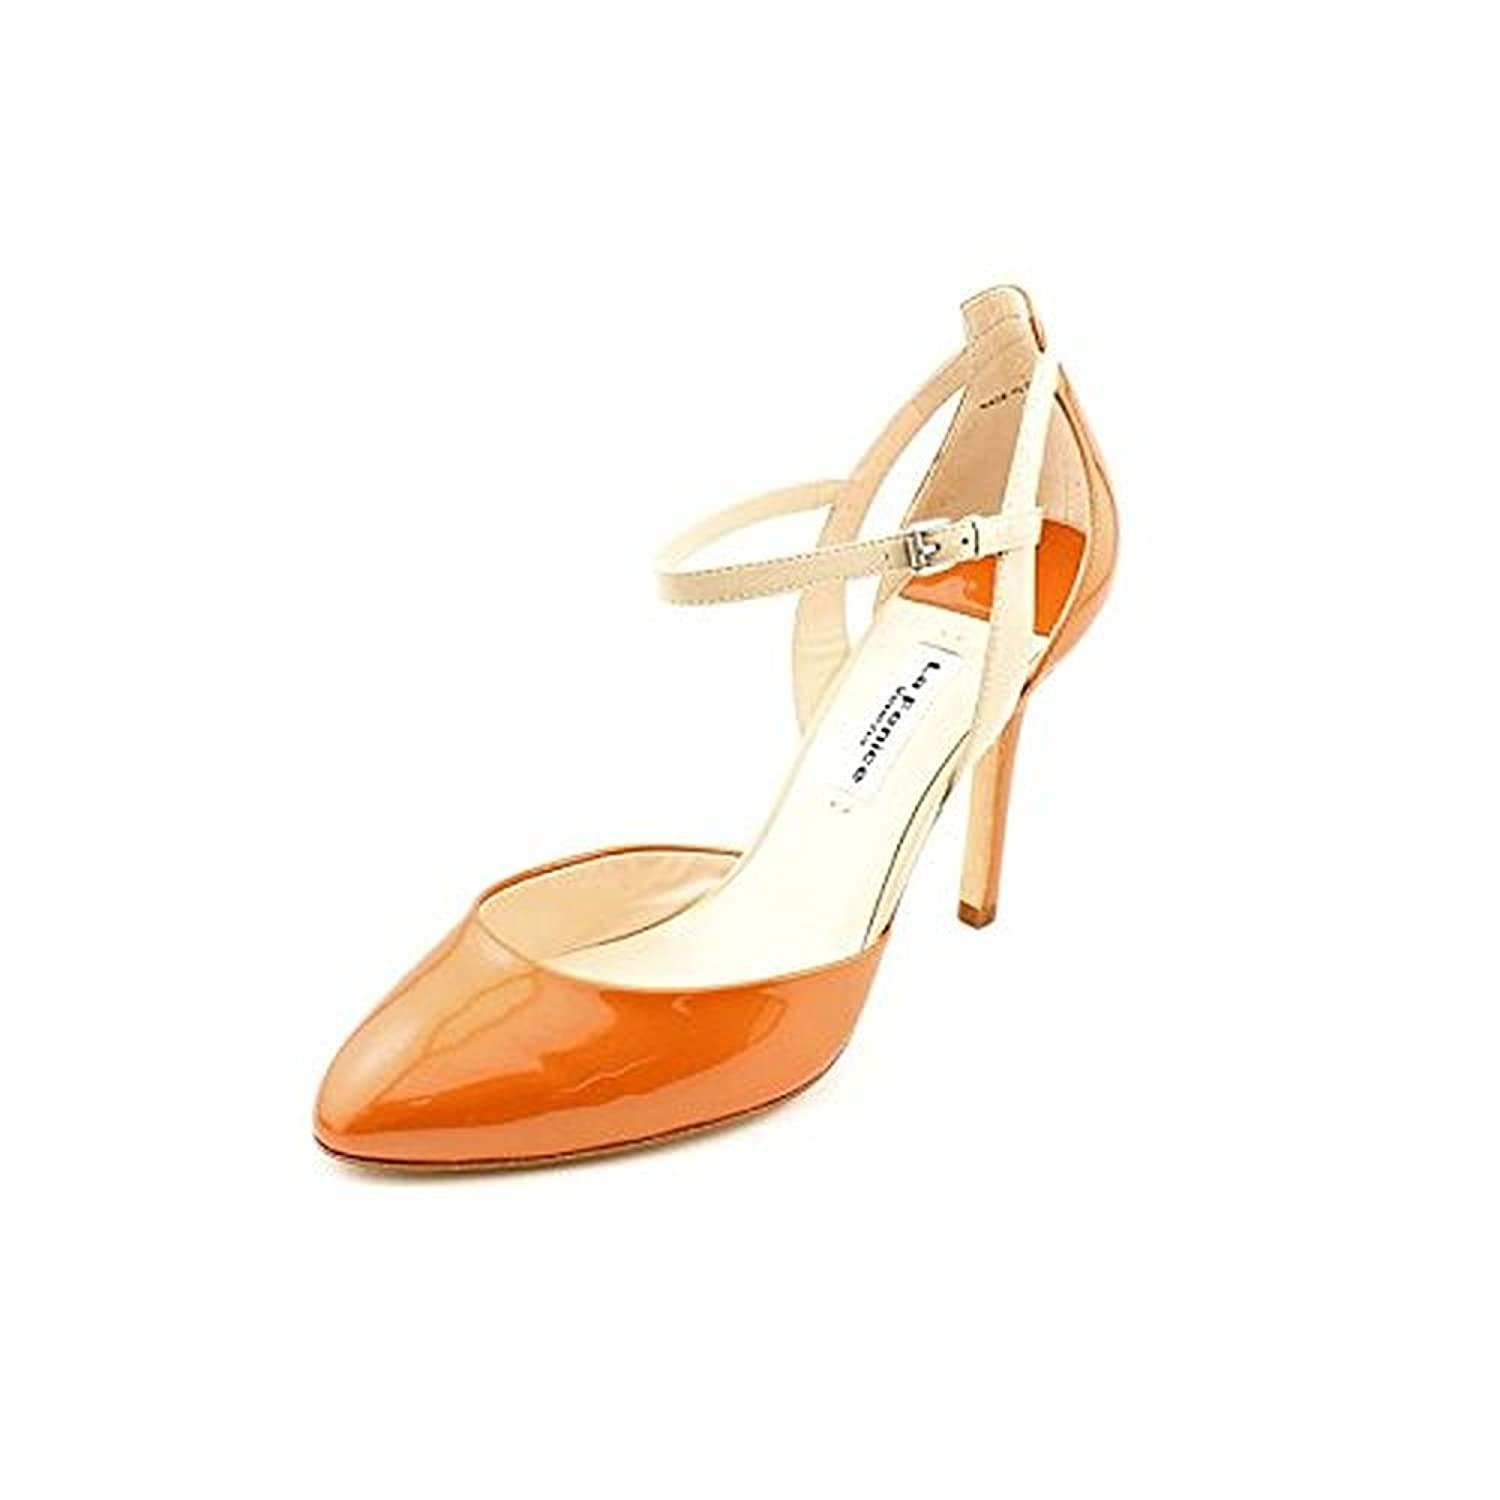 La Fenice Blondie Womens Shoes Orange 5M